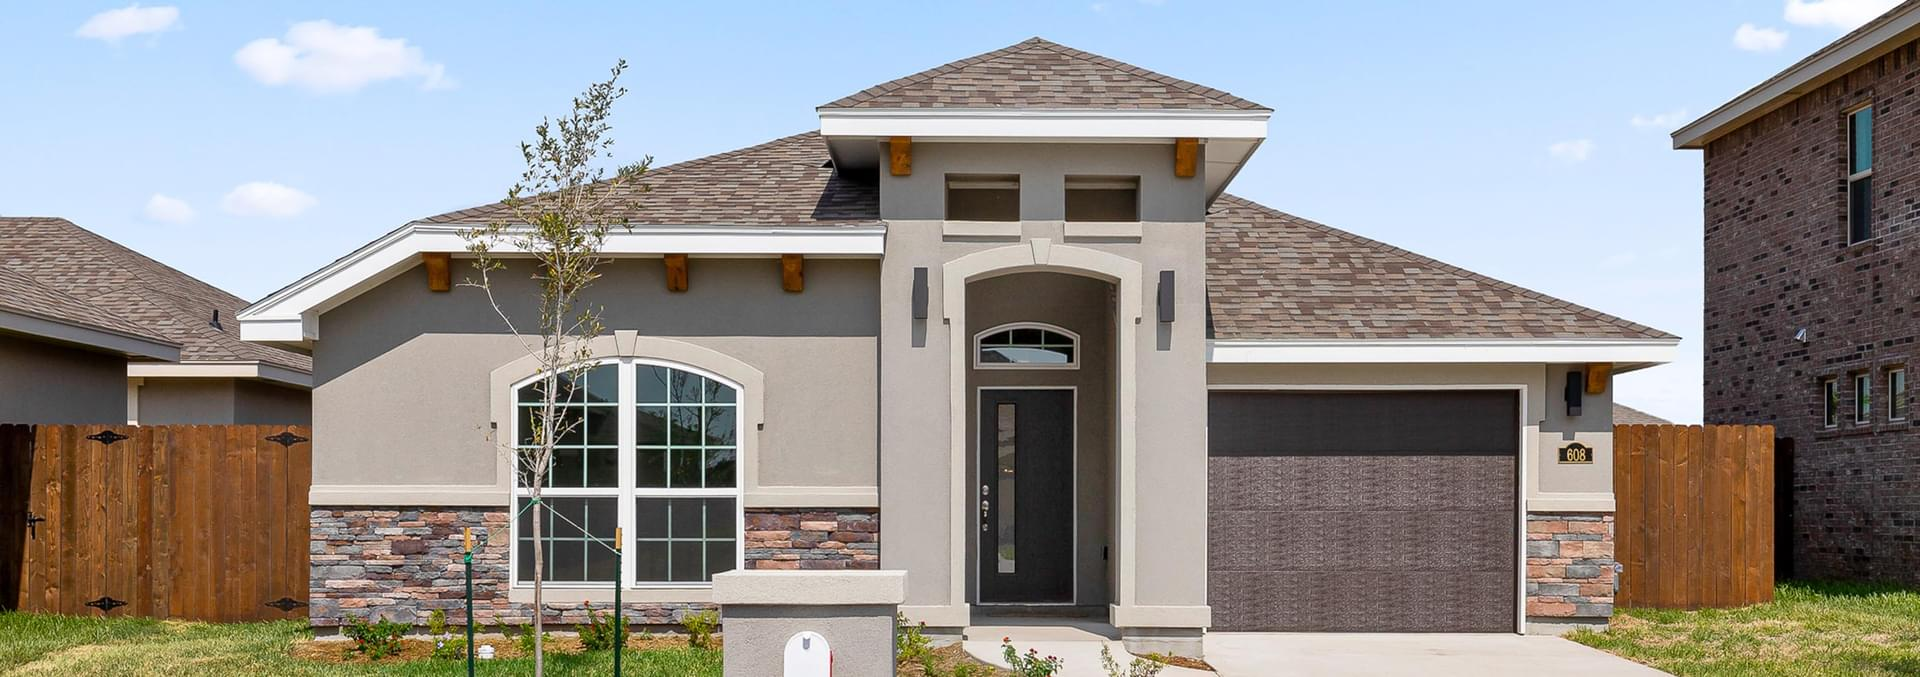 Del Oro at Bentsen Palm New Homes in Mission, TX